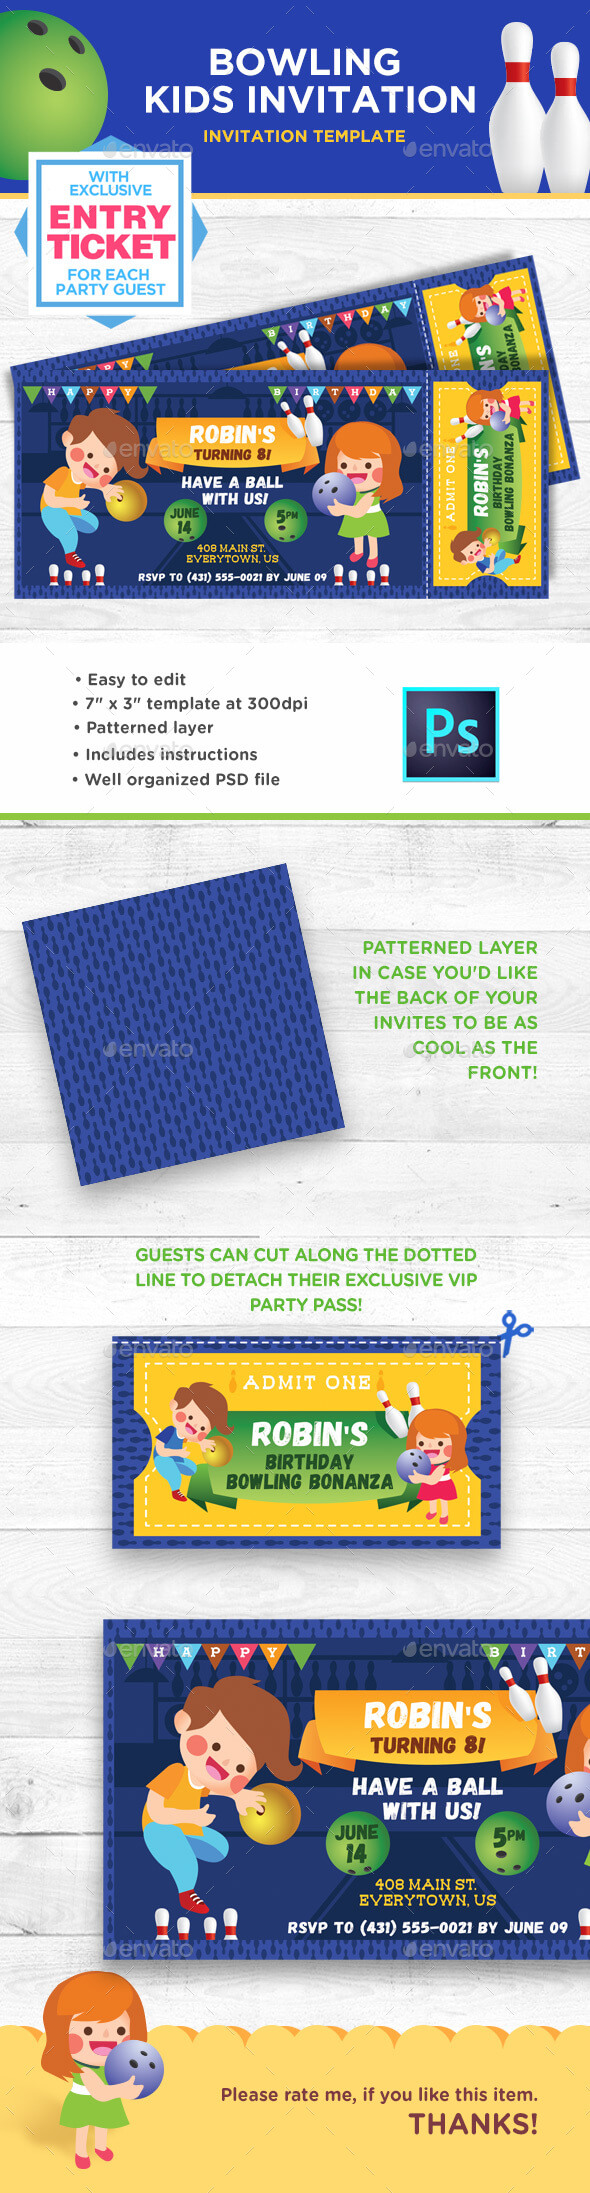 Invitation Templates From Graphicriver With Regard To Sweet 16 Banner Template